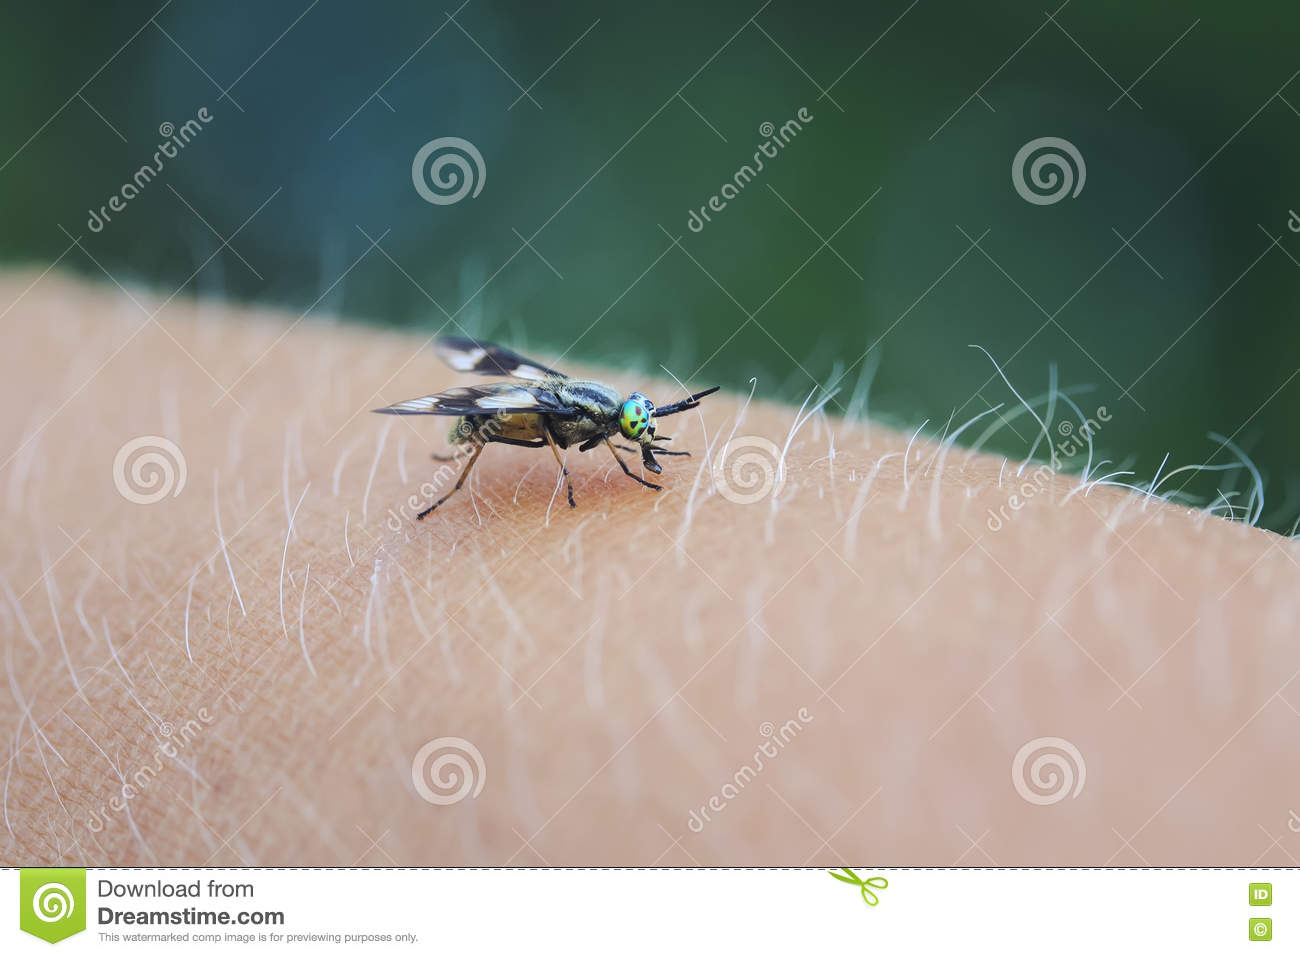 Gadfly - an insect attacking animals and humans. What to do when biting gadfly 85